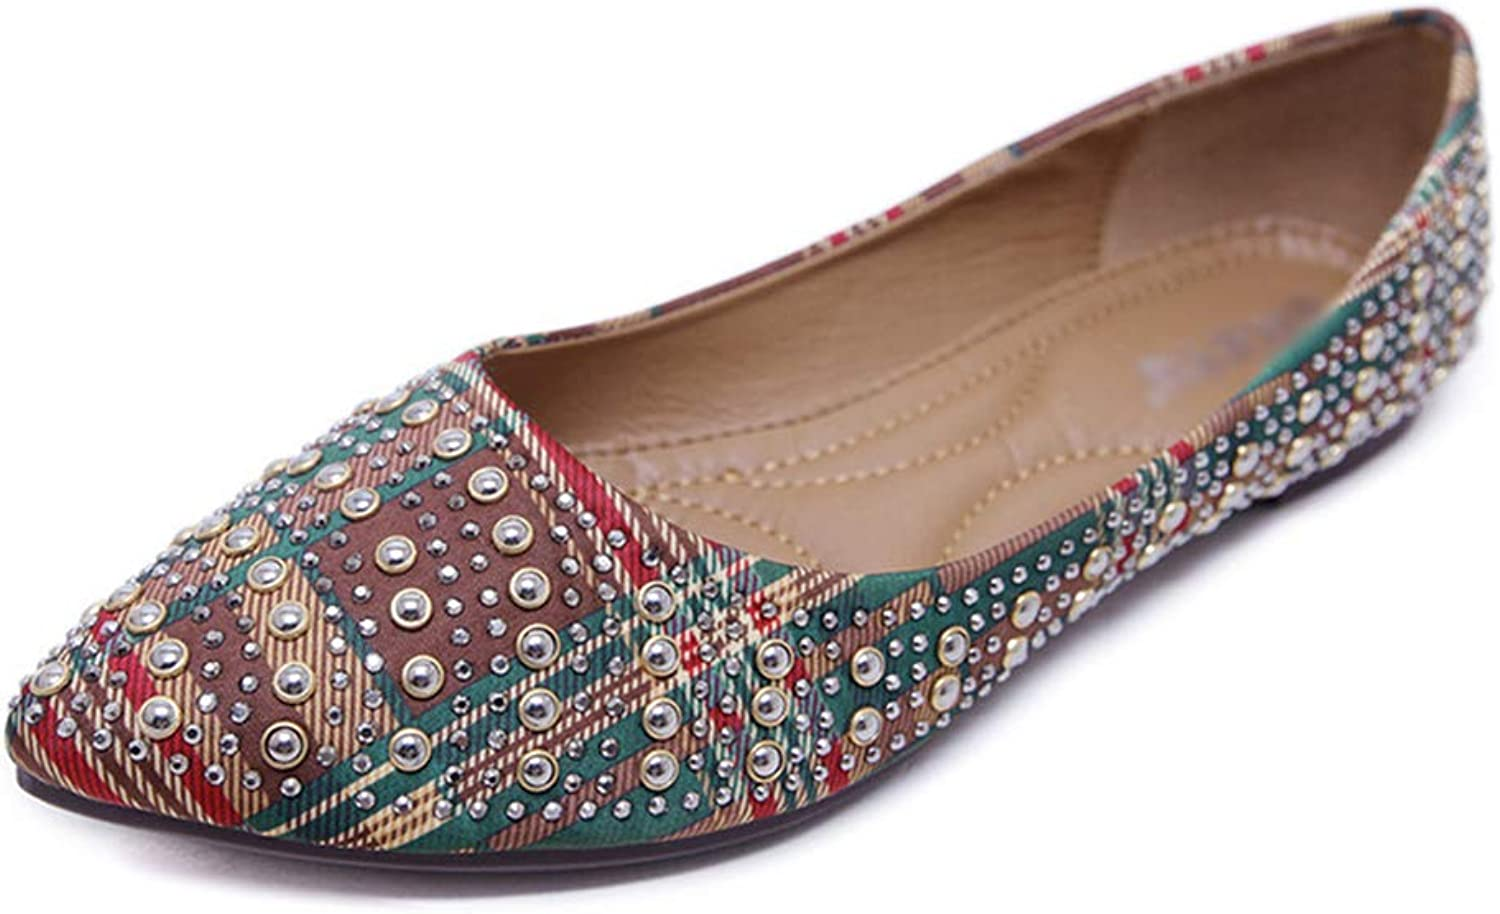 Qi meims Women Ballets Rhinestone Leather Low-Heels Pointed-Toe Antiskid Slip-on Pull-on Casual Comfortable Outdoor Girl Flats